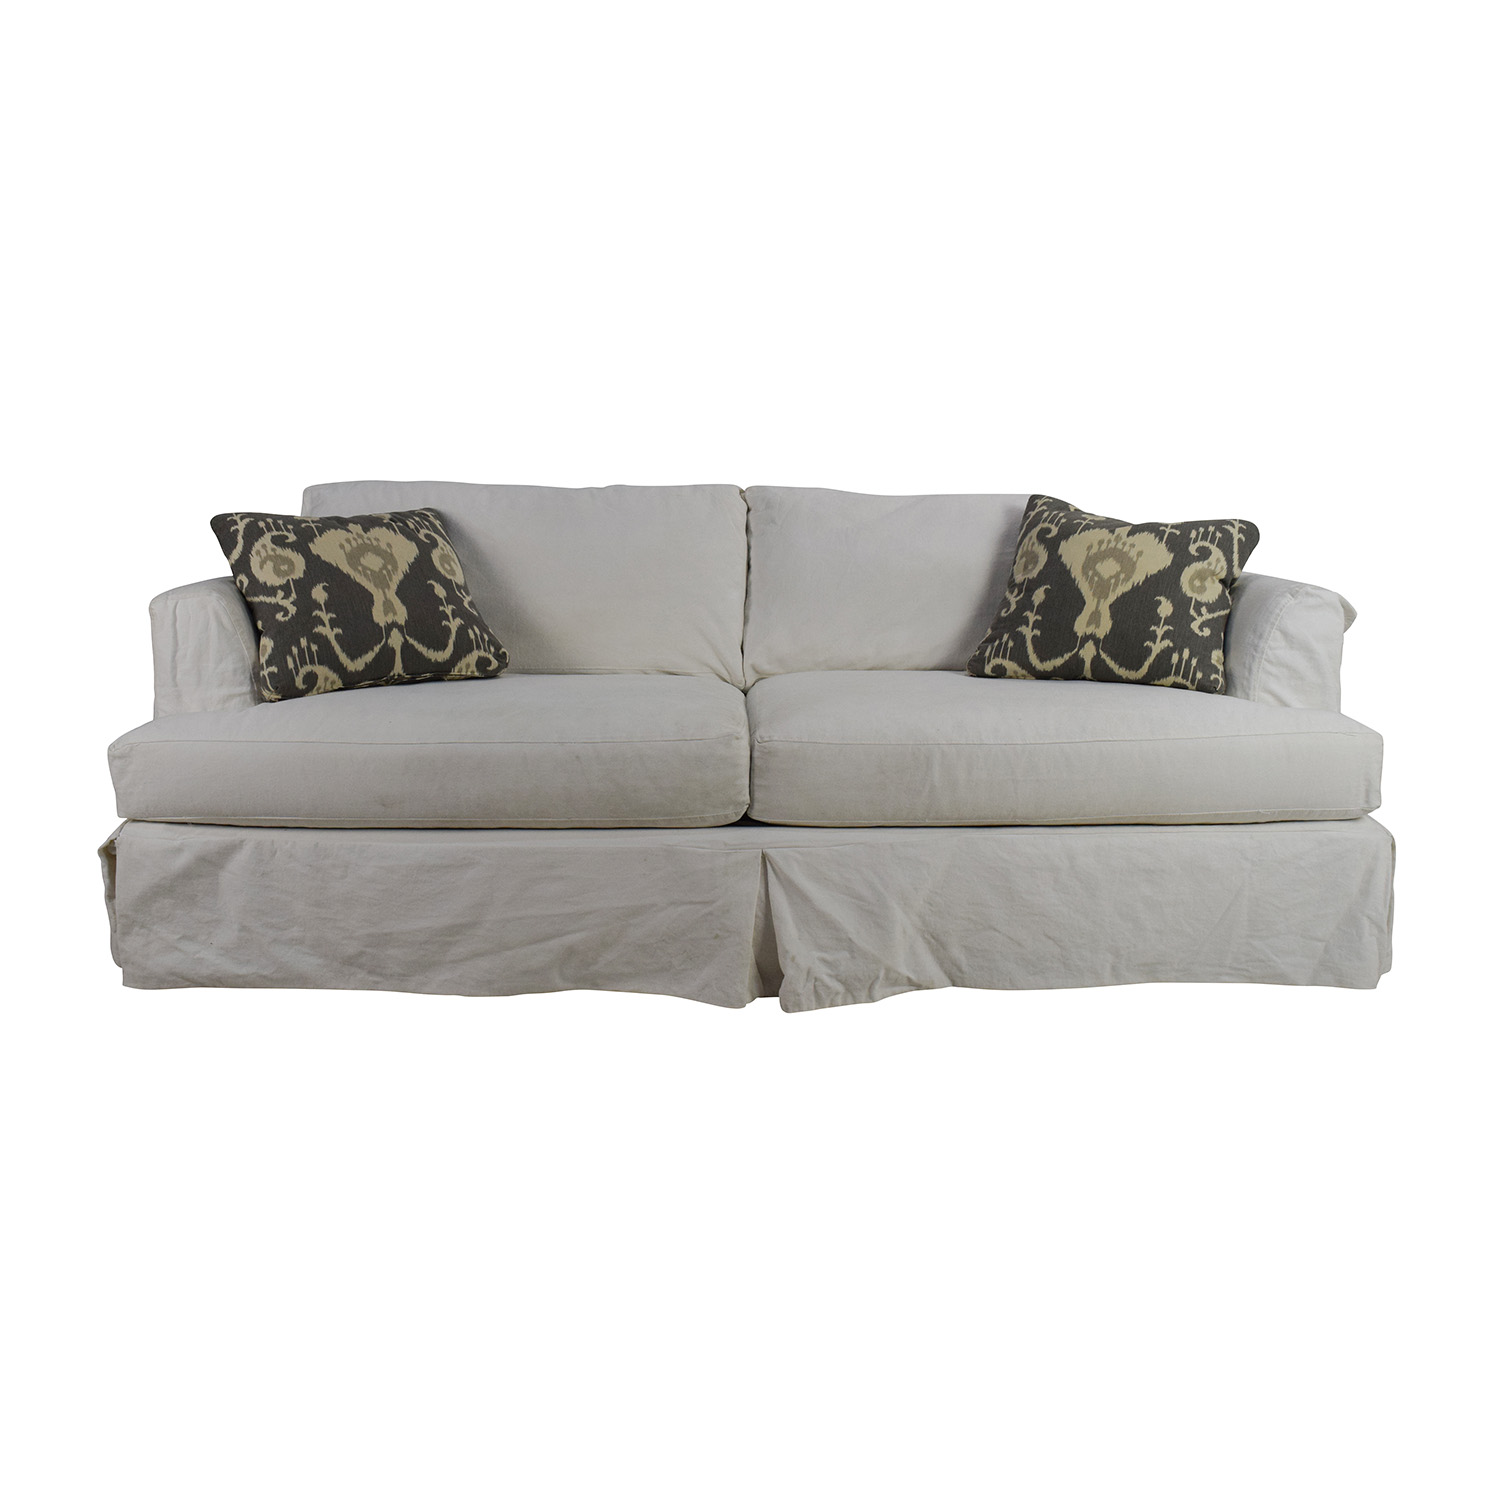 Jennifer Convertibles Jennifer Convertibles Melissa Slipcovered Sofa